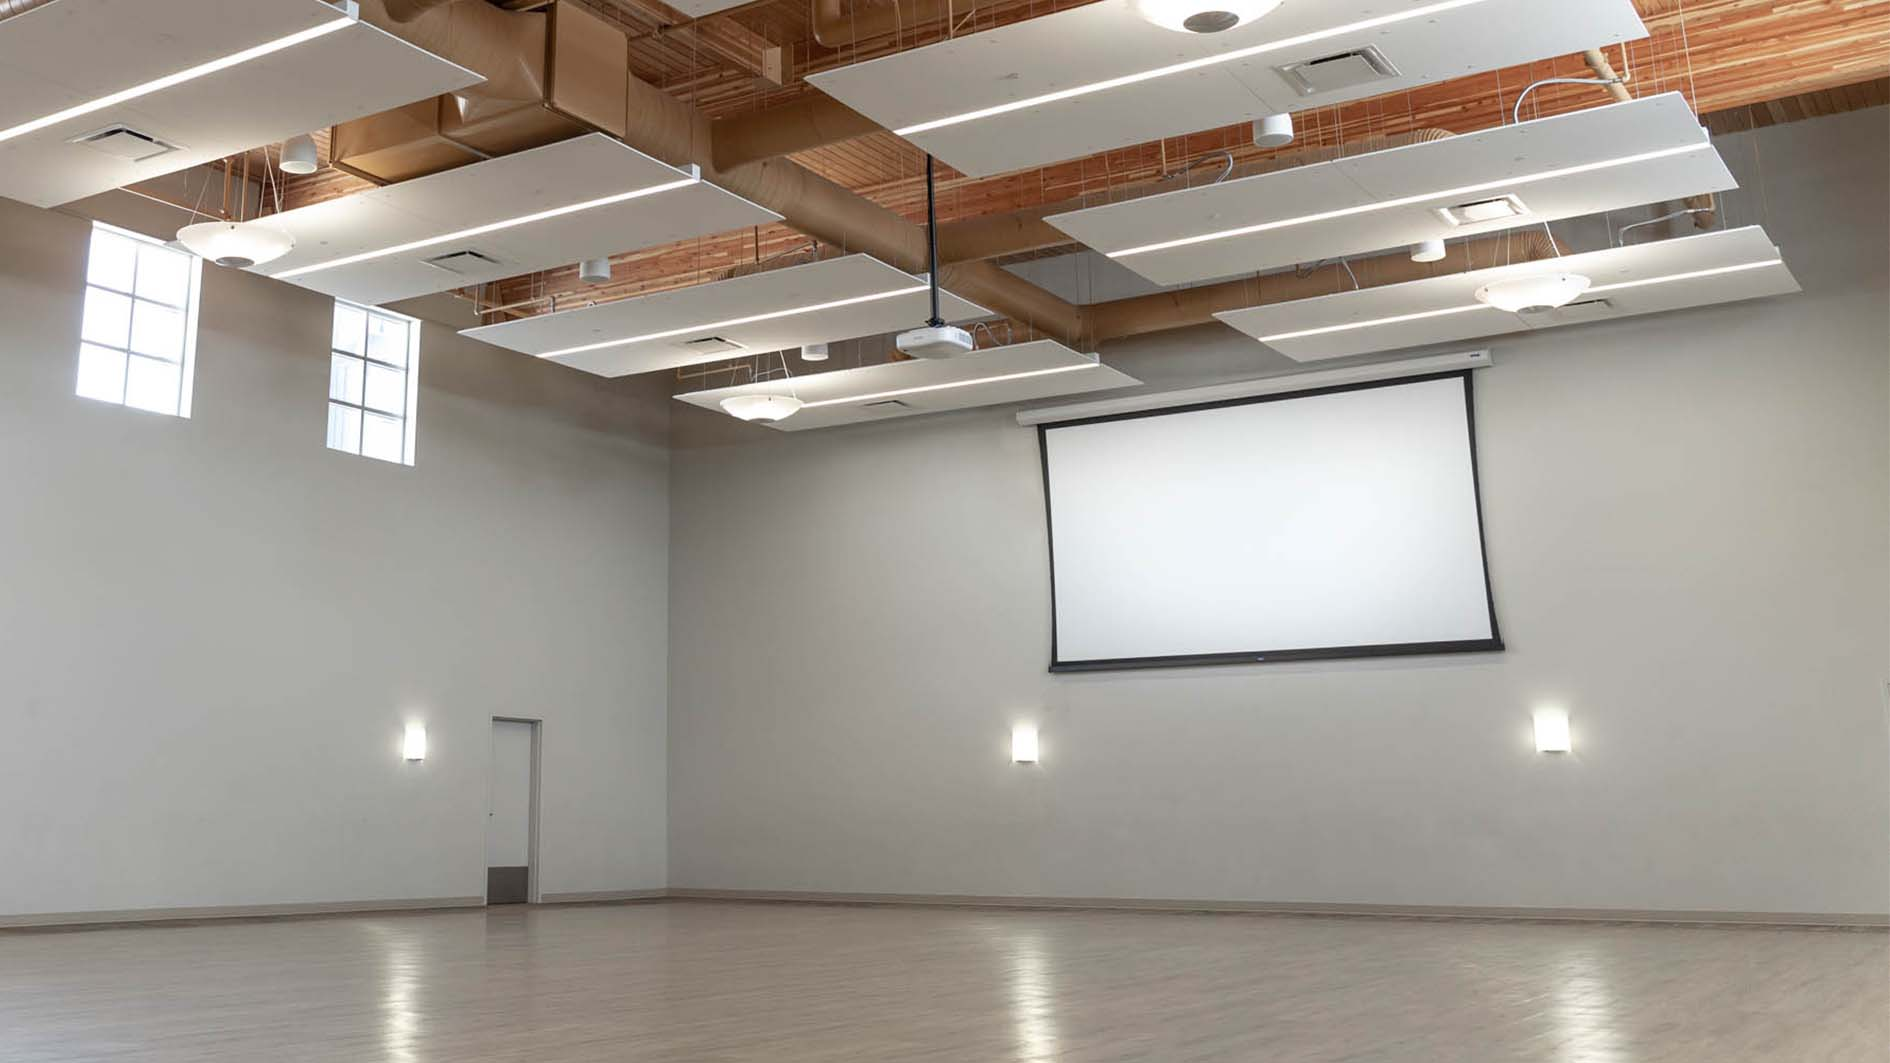 BEAUMONT_COMMUNITY_CENTER_PROJECTOR_HEADER